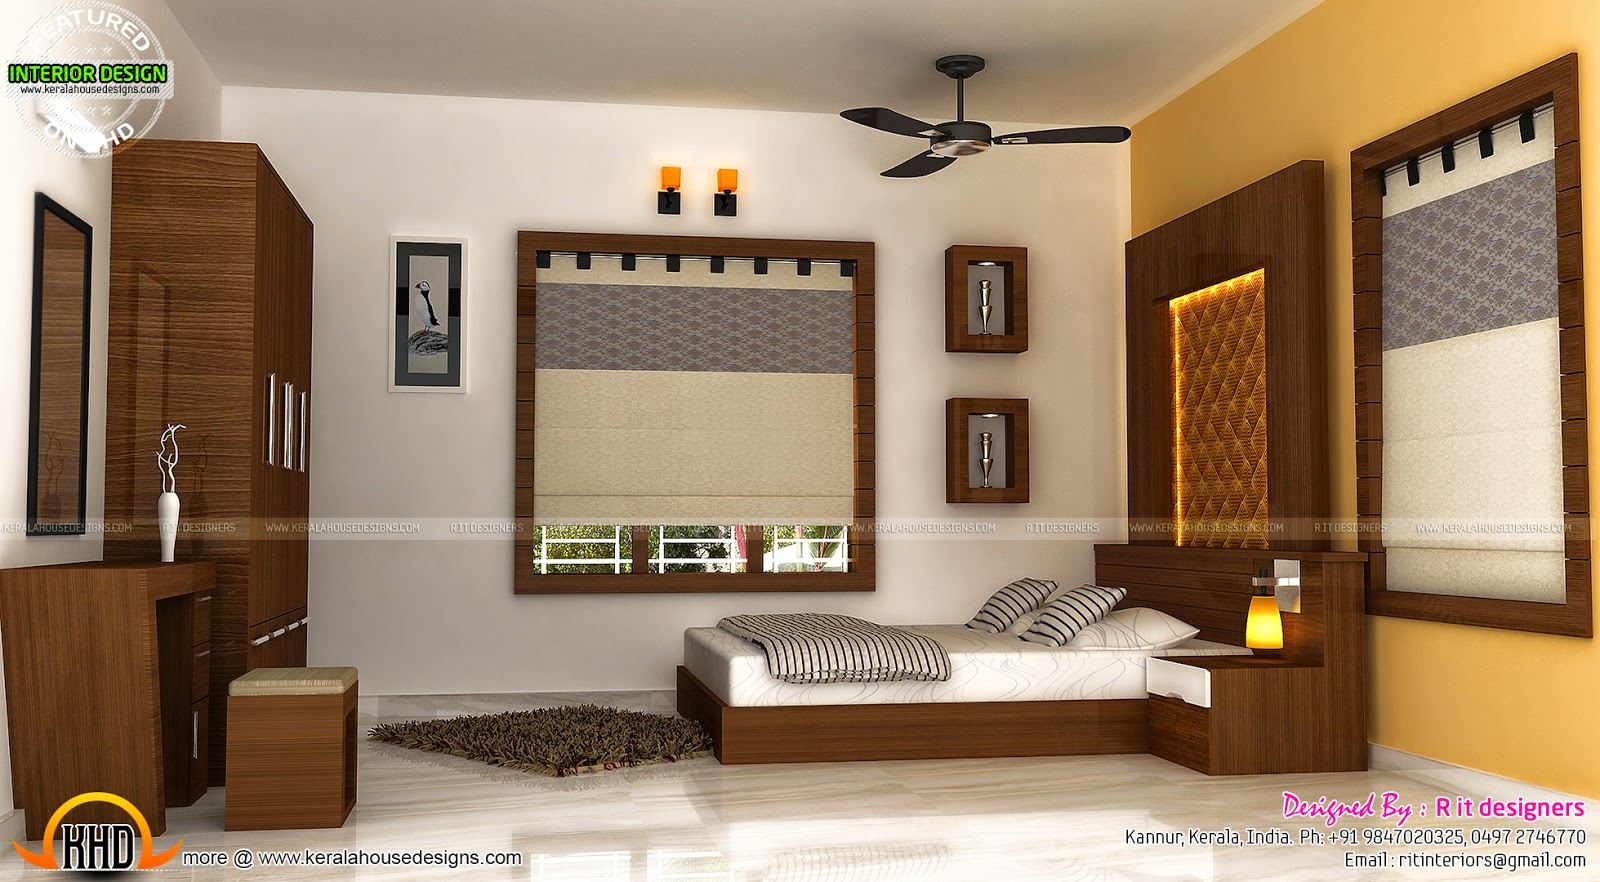 Home Interior Design Pictures Staircase Bedroom Dining Interiors Kerala Home Design